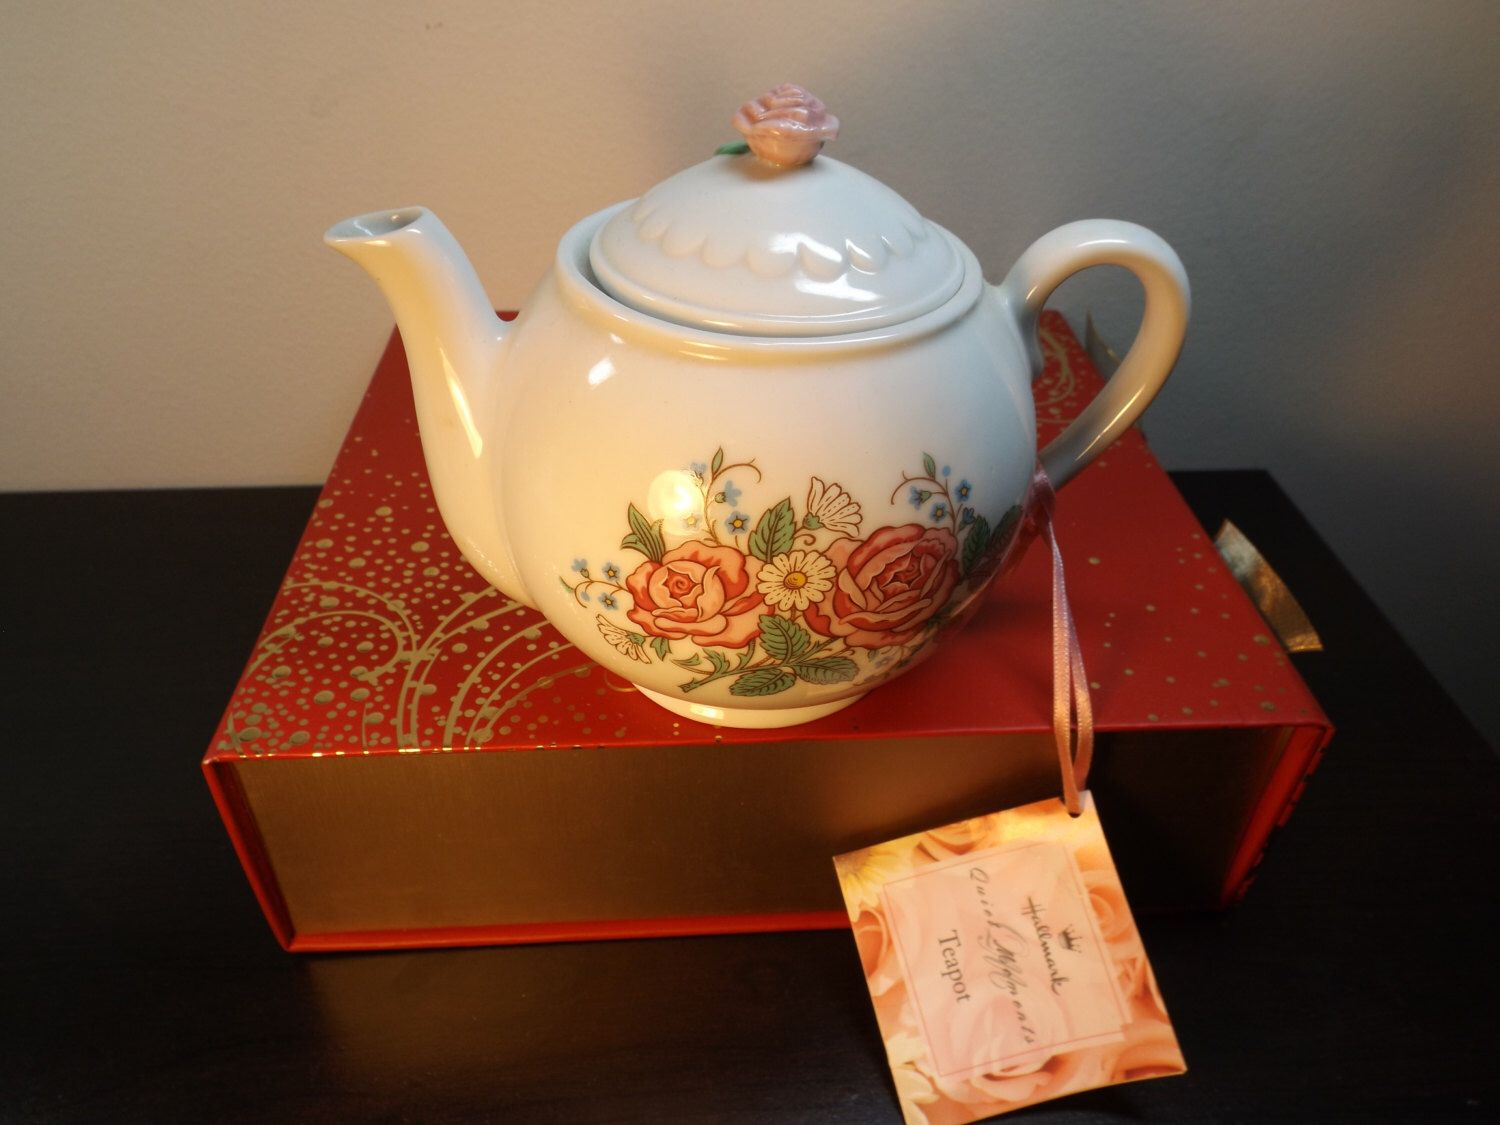 Vintage porcelain teapot or coffee pot ,made in Sri Lanka,signed on the bottom, great for any occasion.New old stock by HuntWithJoy on Etsy https://www.etsy.com/listing/216453843/vintage-porcelain-teapot-or-coffee-pot